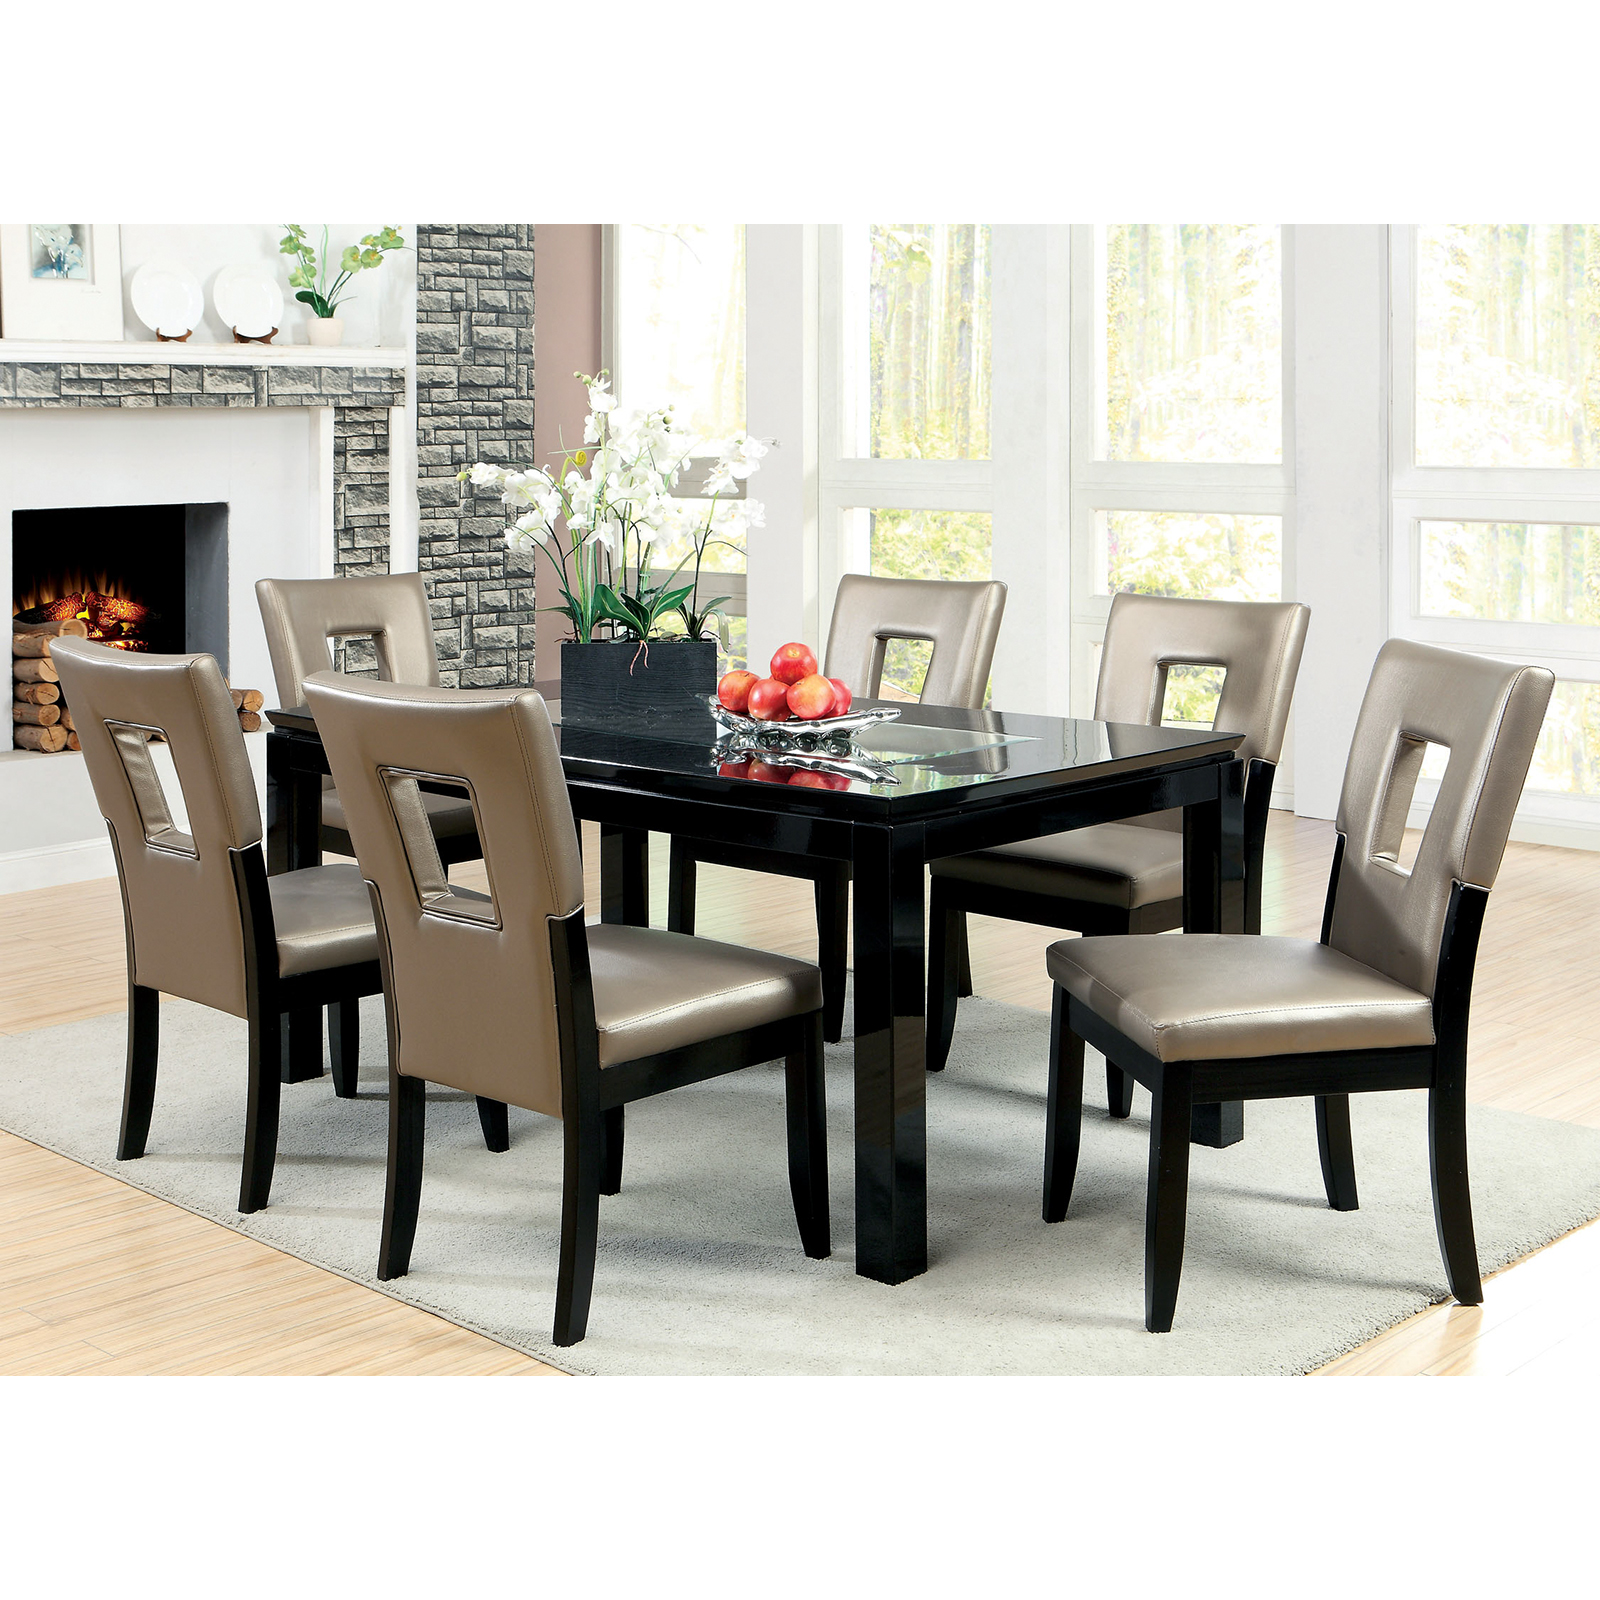 Furniture of America Vanderbilte 7 Piece Wood with Glass Inlay Dining Set  Black Hayneedle